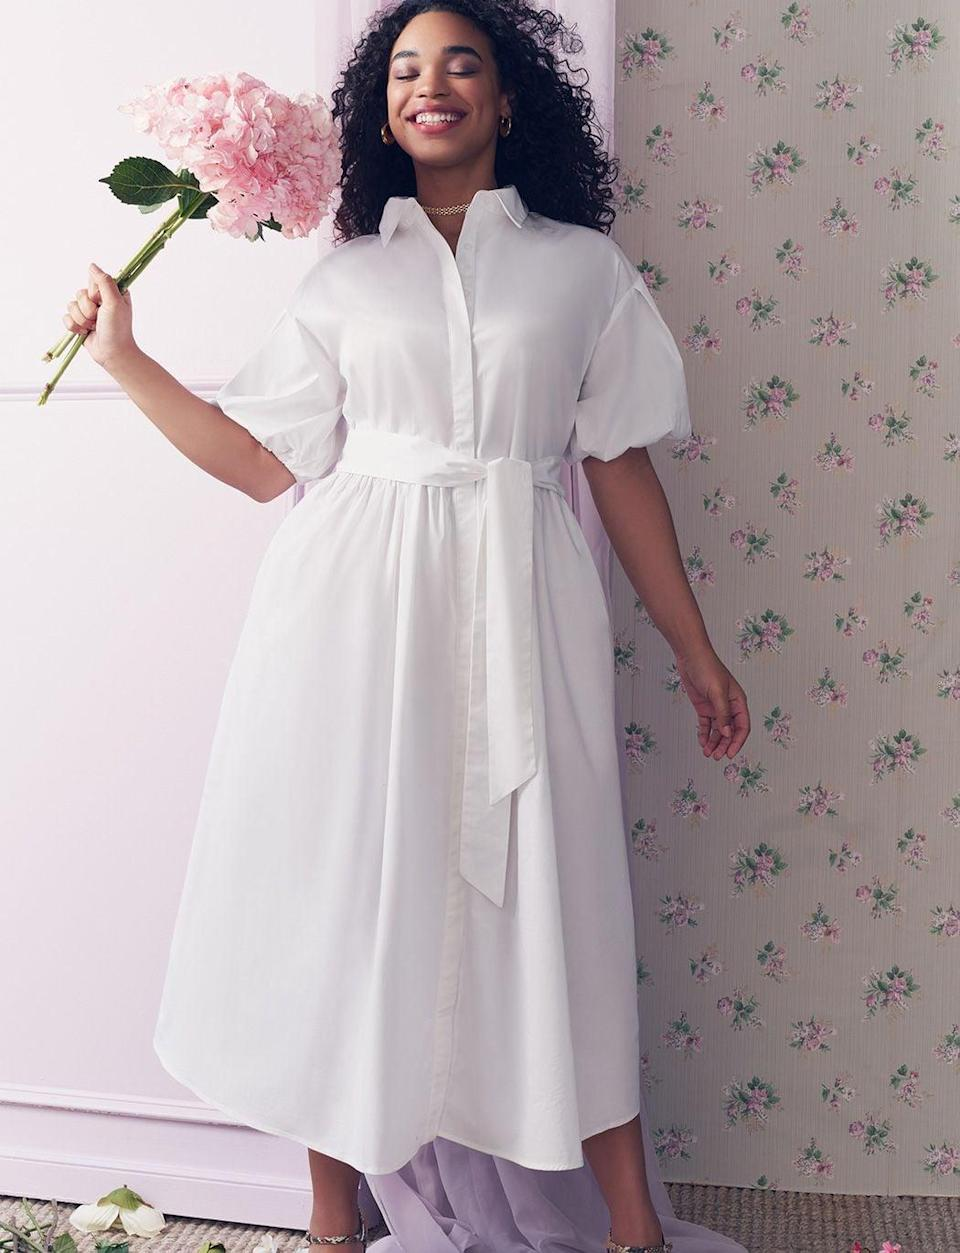 <p>This <span>Eloquii Puff Sleeve Button Down Dress</span> ($140) has adorable puff sleeves and a flattering tie at the waist. If you want a longer dress, this is a great choice.</p>